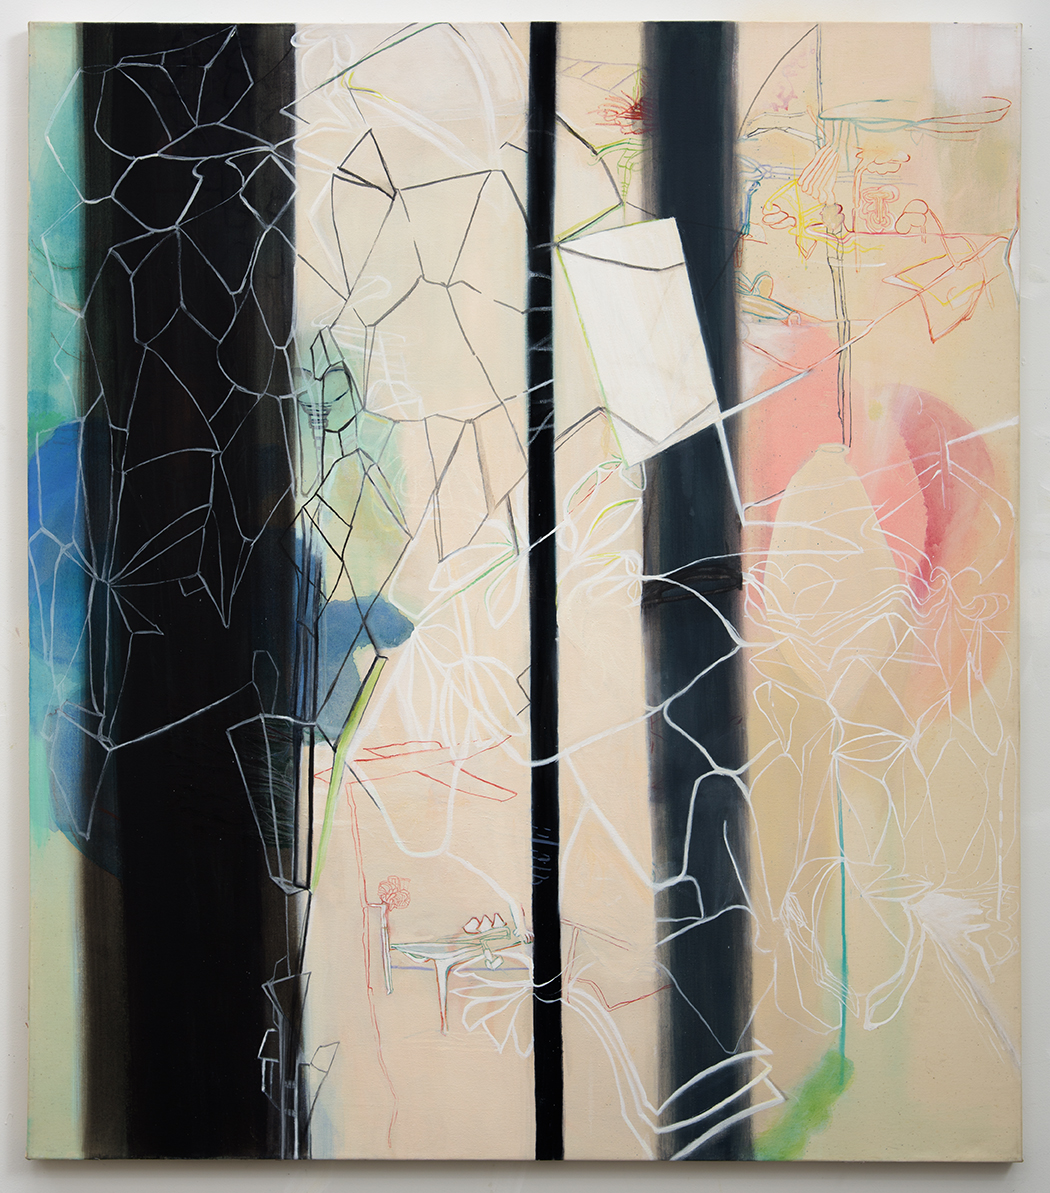 Rebeca Puga  Neutrinos,  2012 Oil on canvas 60 x 52 inches